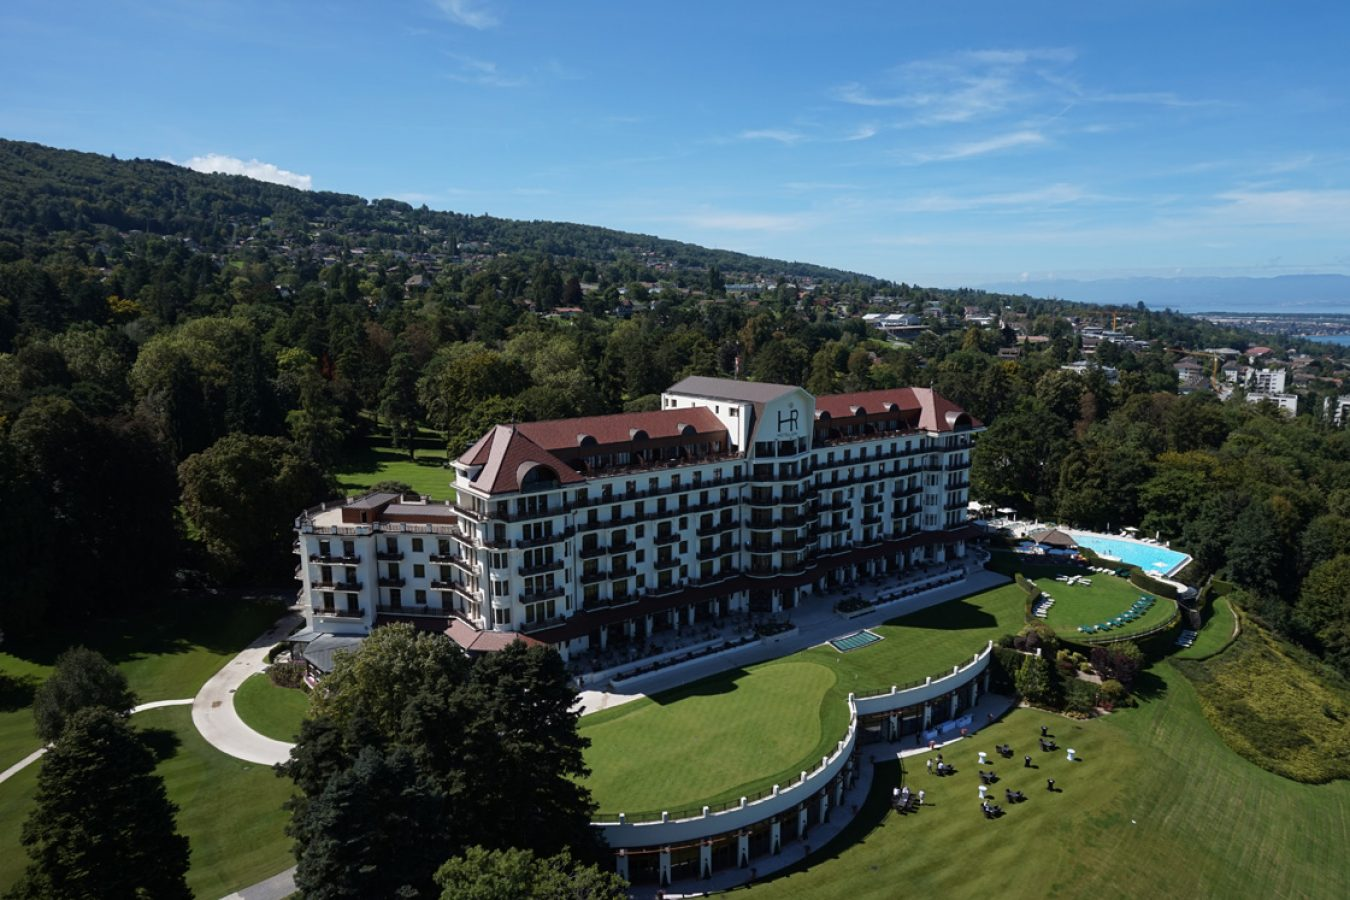 Le Royal Evian Hotel Royal Evian The Luxury Spa Edit